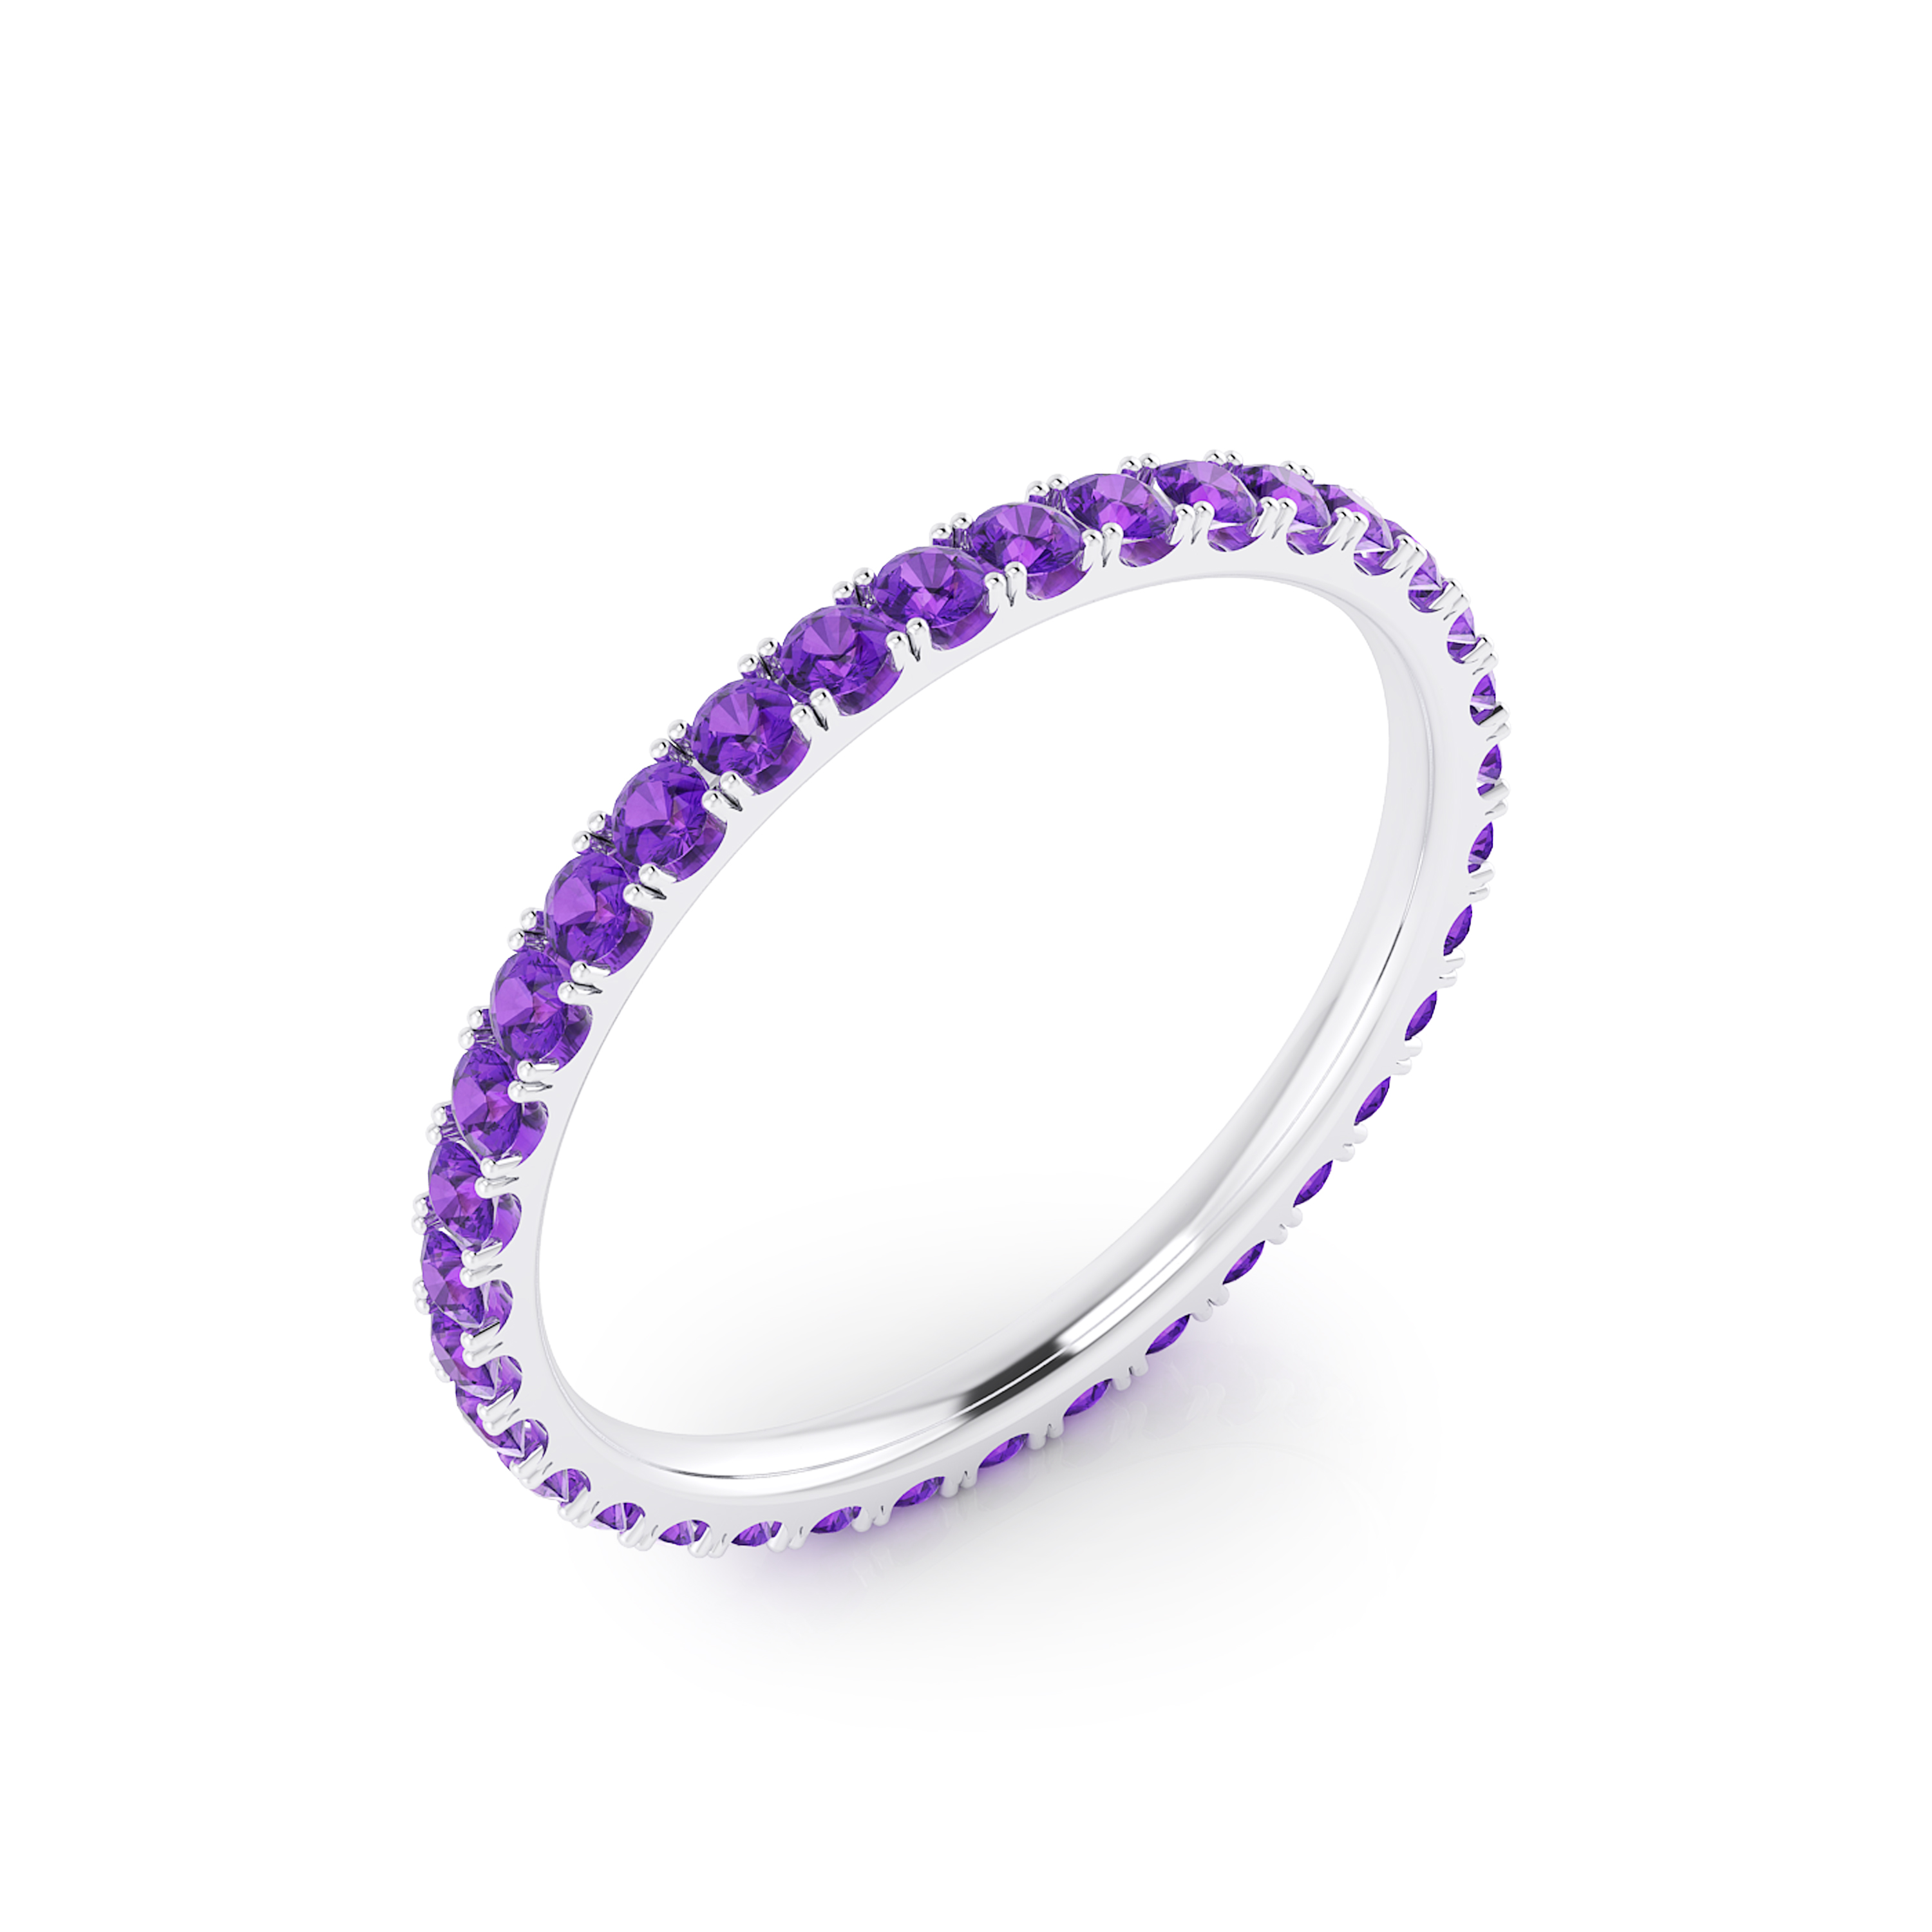 Amethysts ring made of 18k white gold